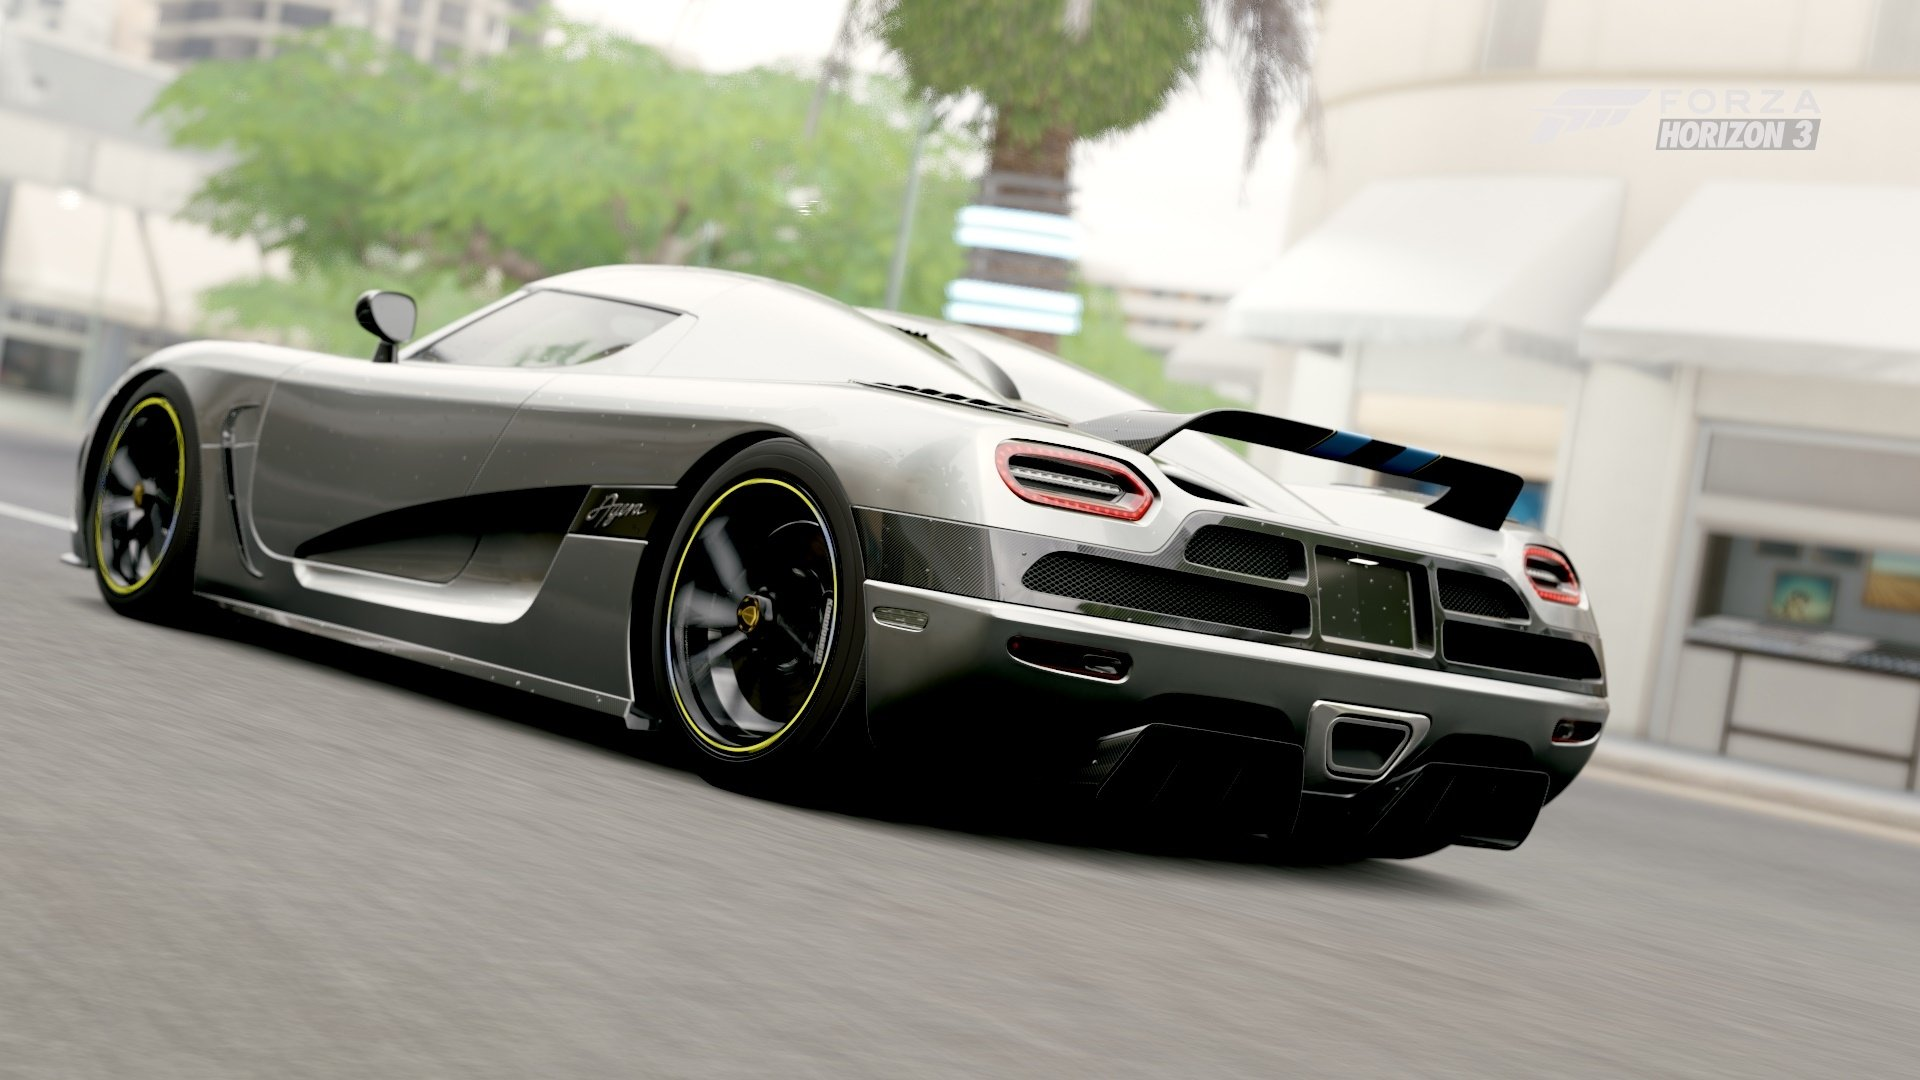 Video Game - Forza Horizon 3  Koenigsegg Agera Koenigsegg Wallpaper